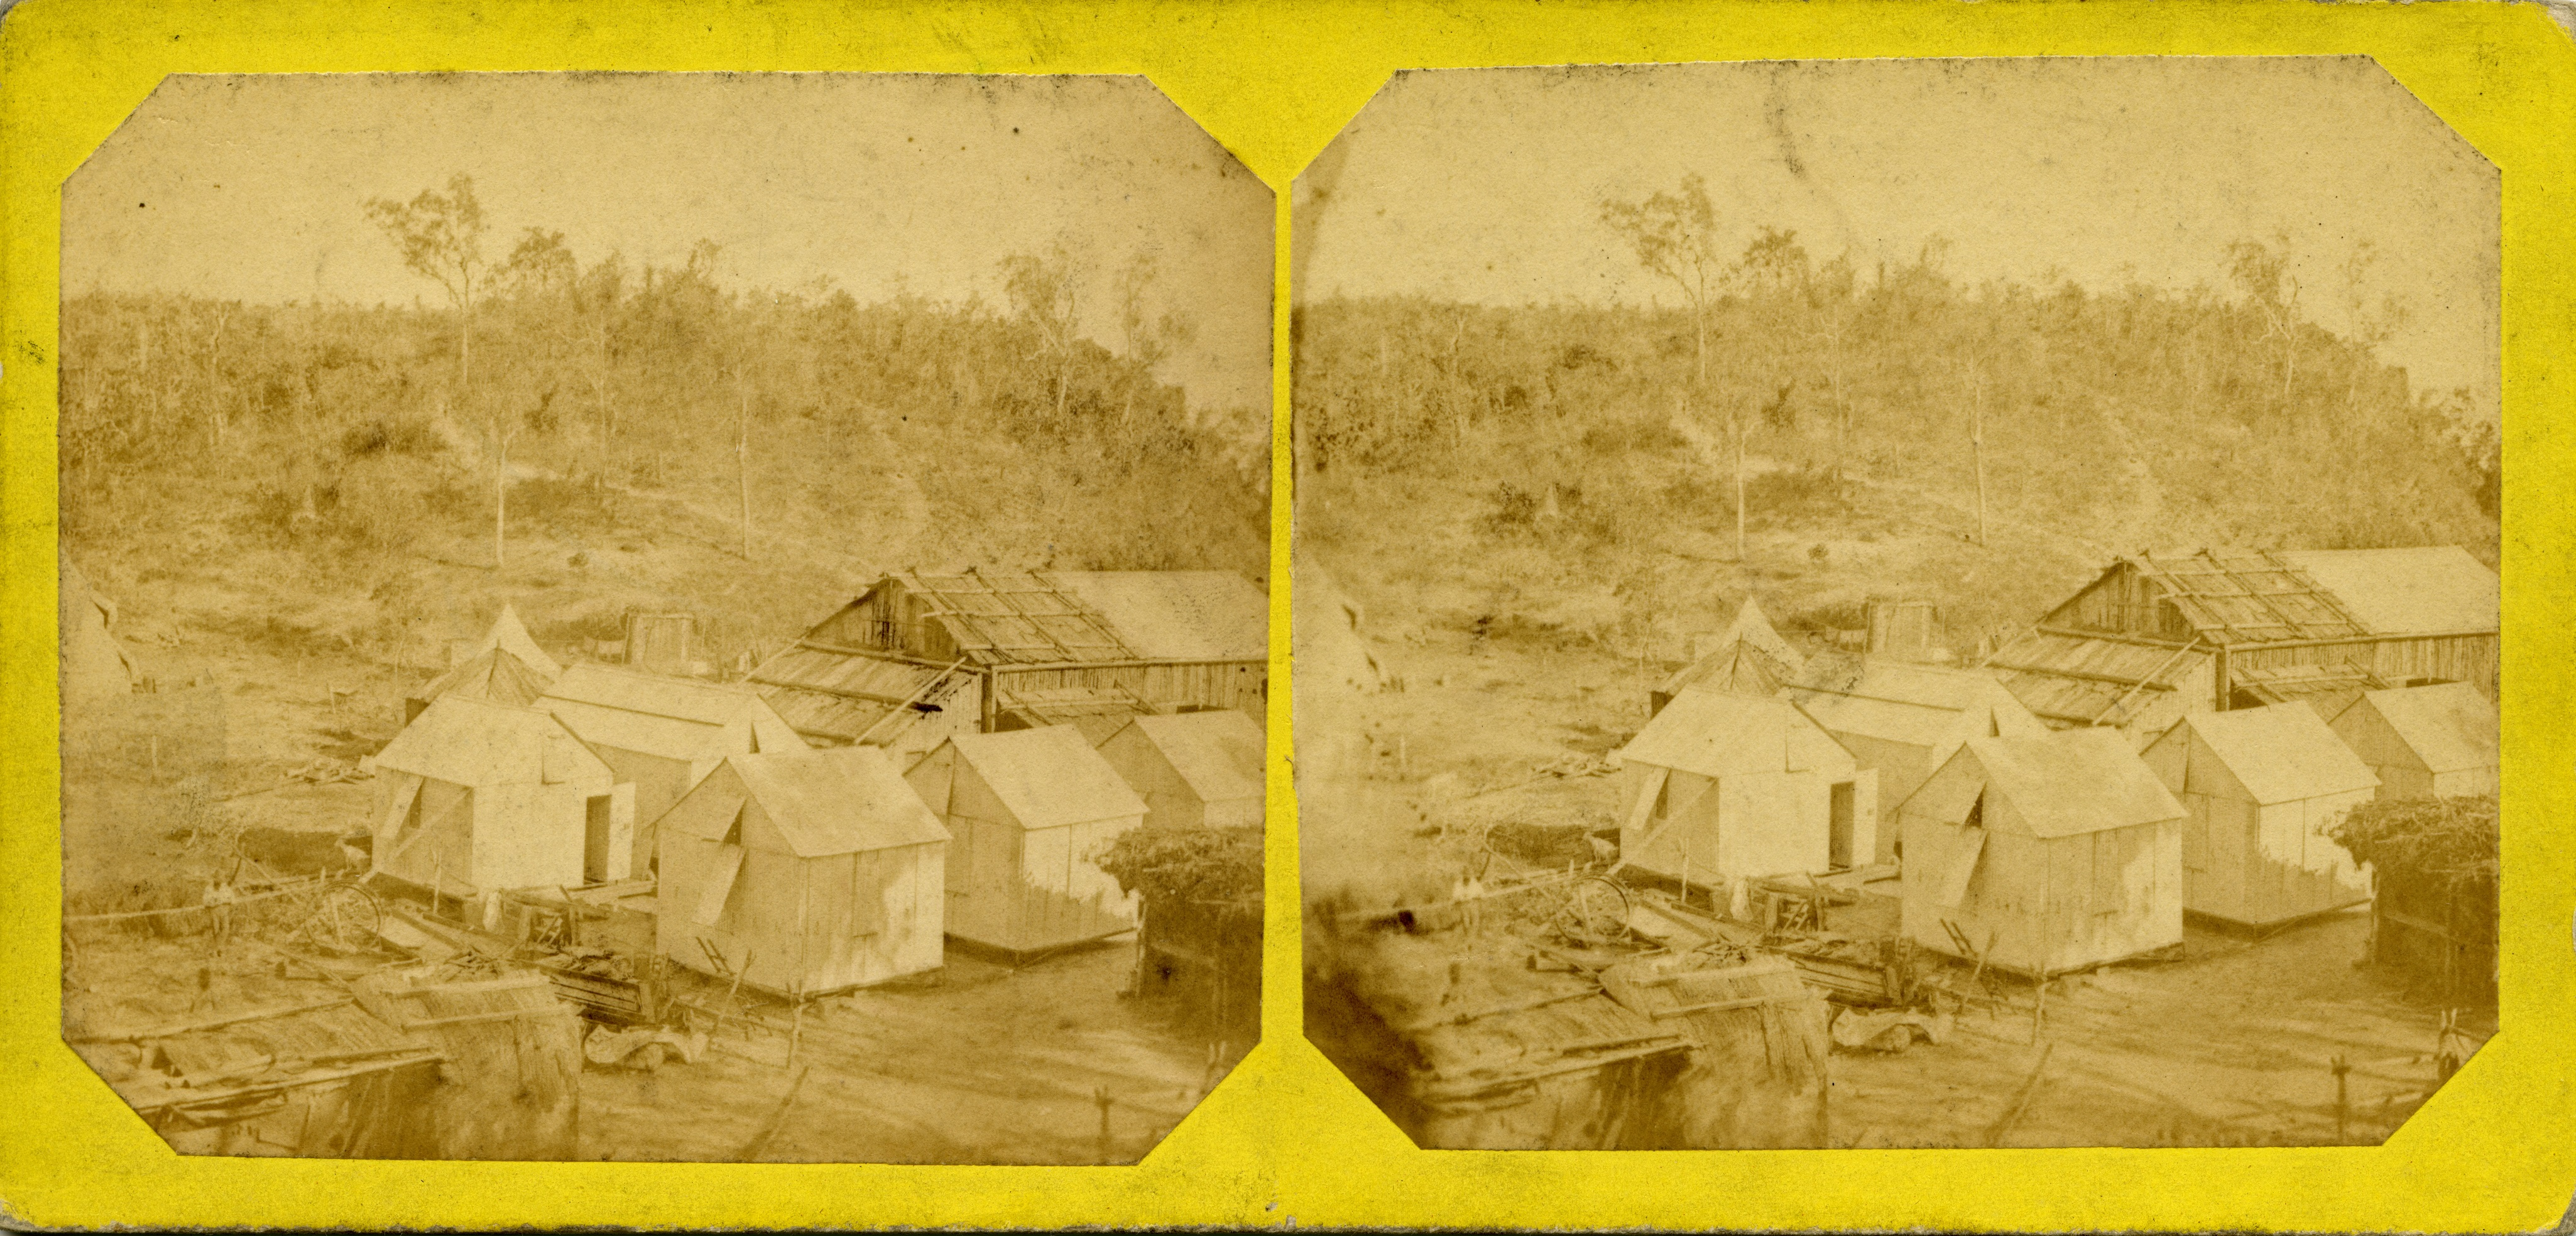 Stereoscopic image of Main Camp, 1869